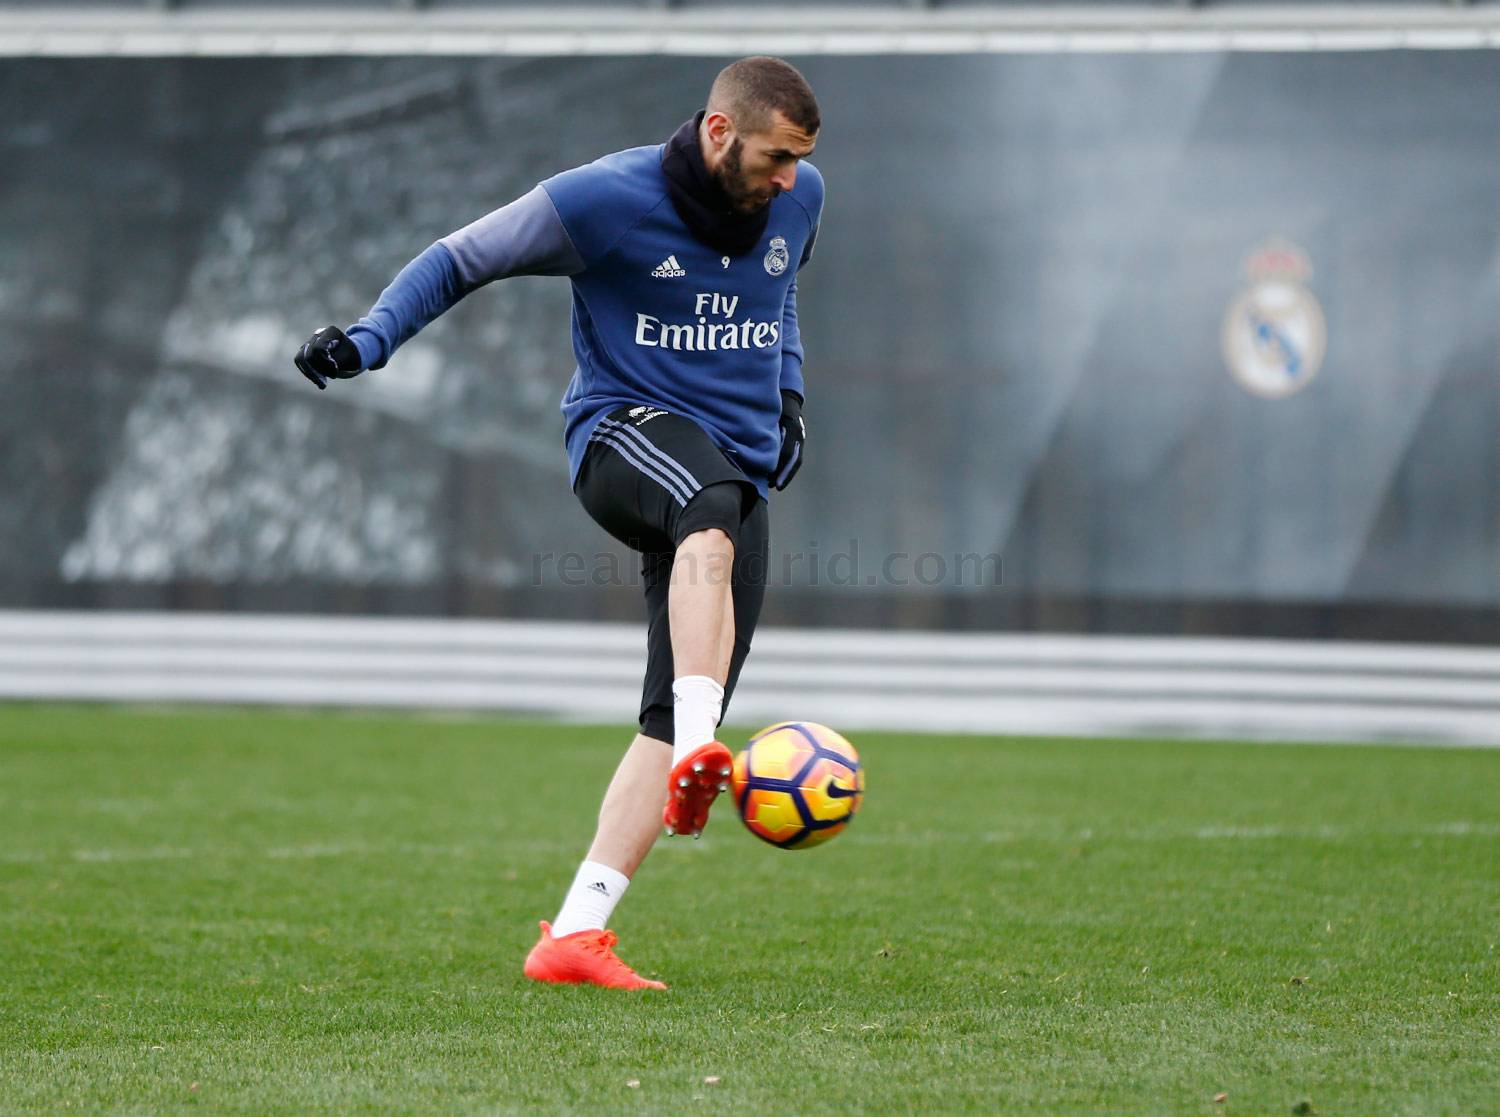 Real Madrid - Entrenamiento del Real Madrid - 04-02-2017